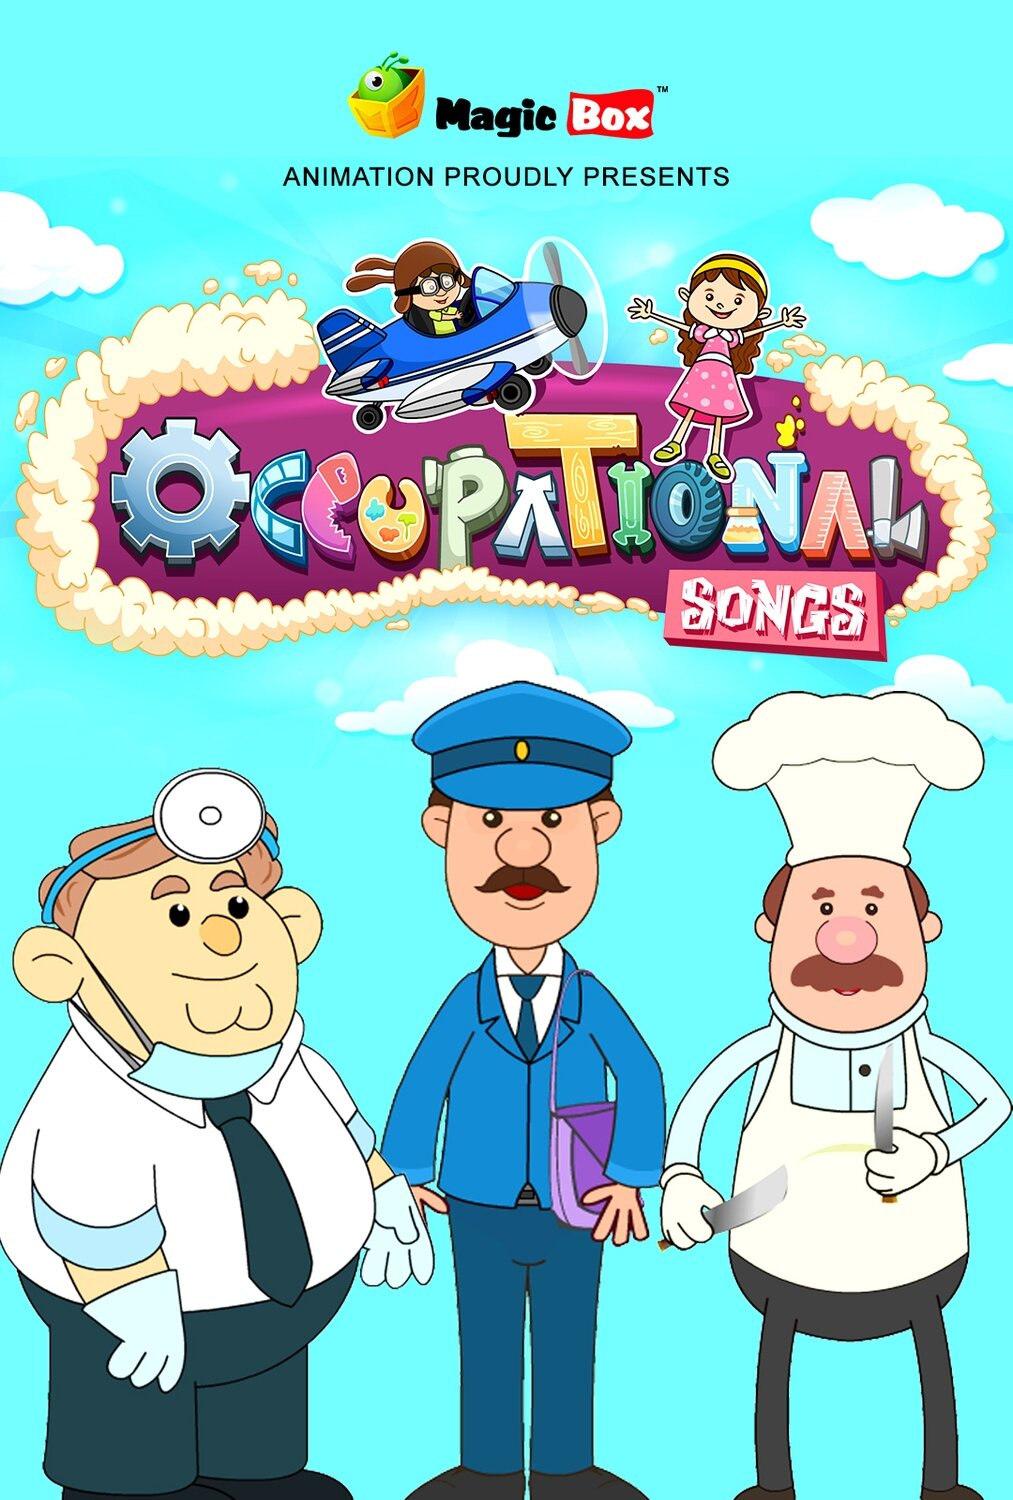 Occupational songs